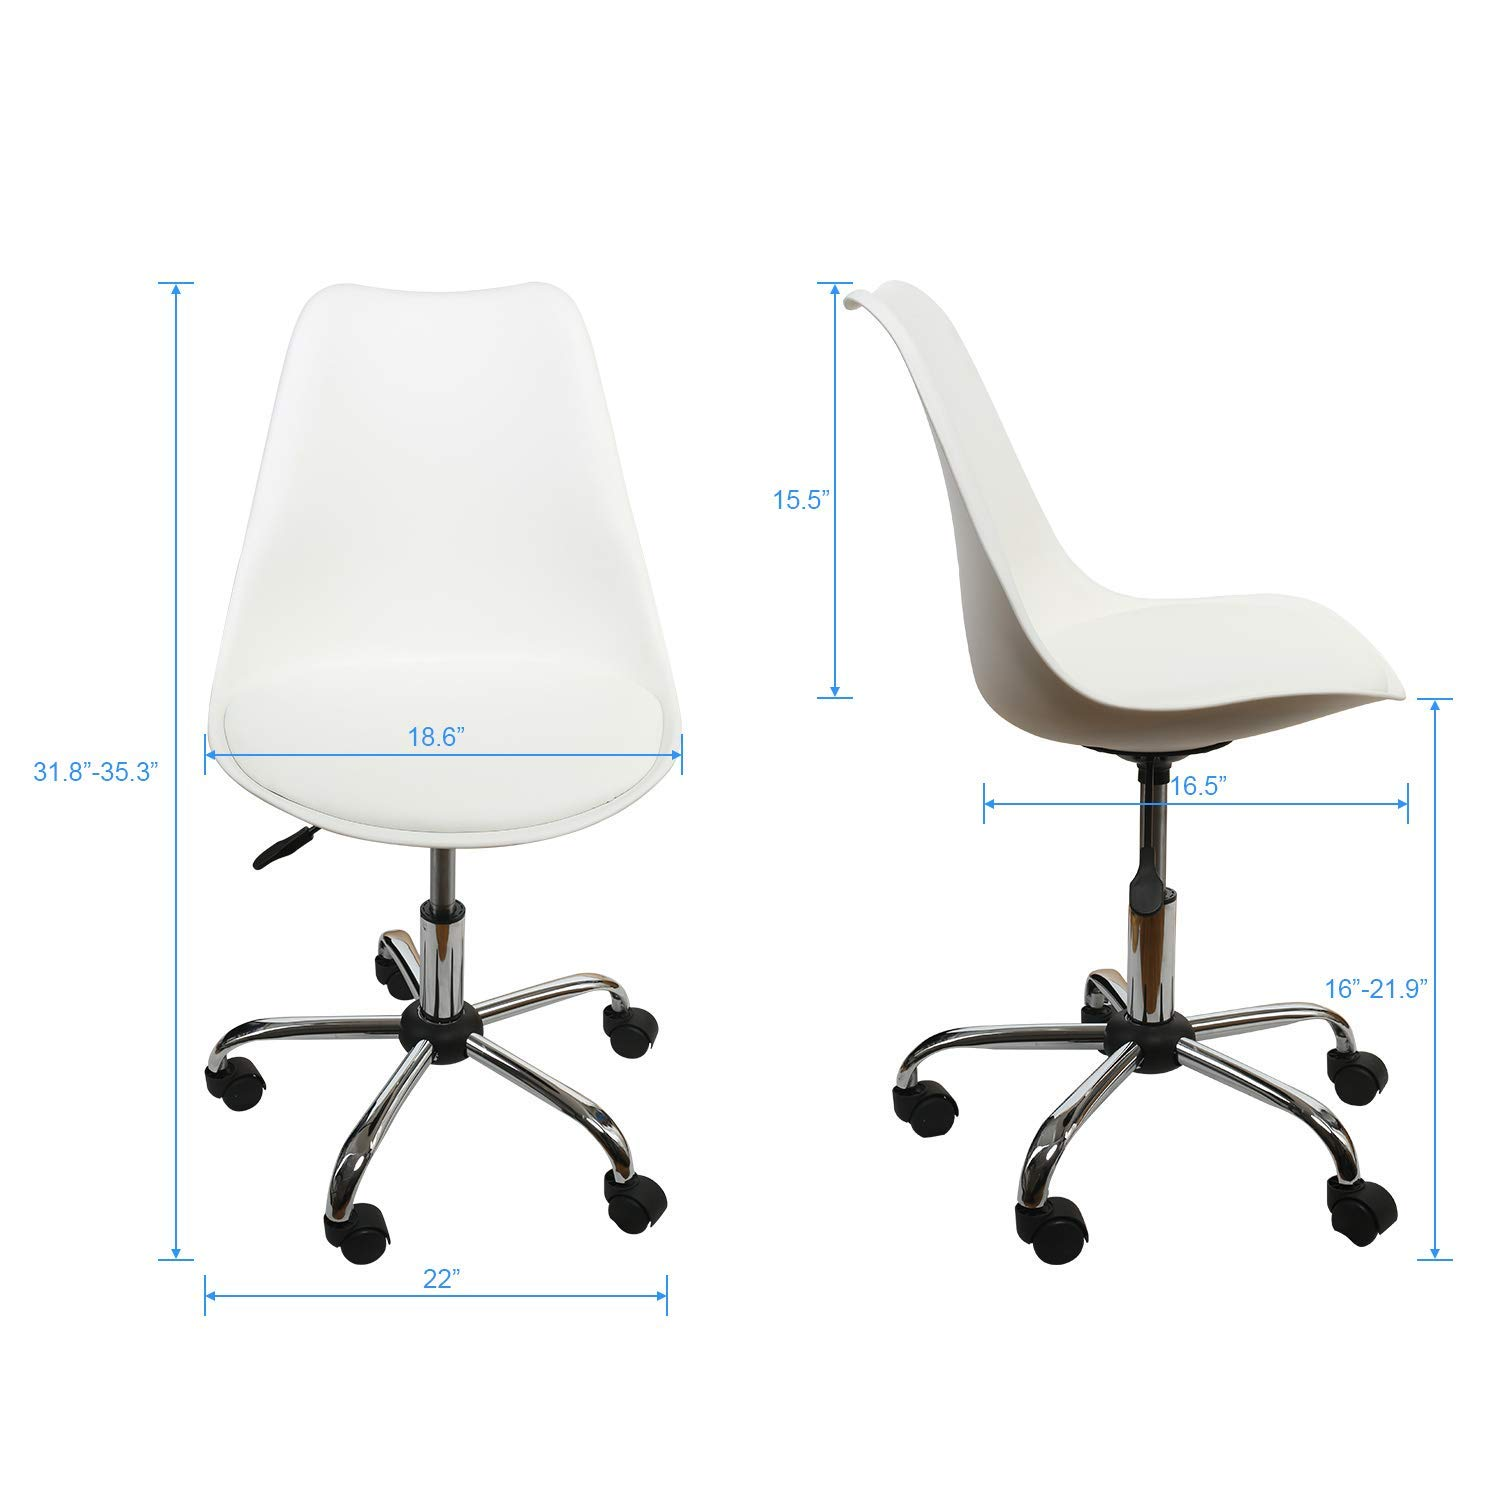 Office Chair White,Low-Back Support,PU Leather Surface,Computer Chair Comfort Height Adjustable, Chair Seat Without Arms in White,by U-Eway,1PC